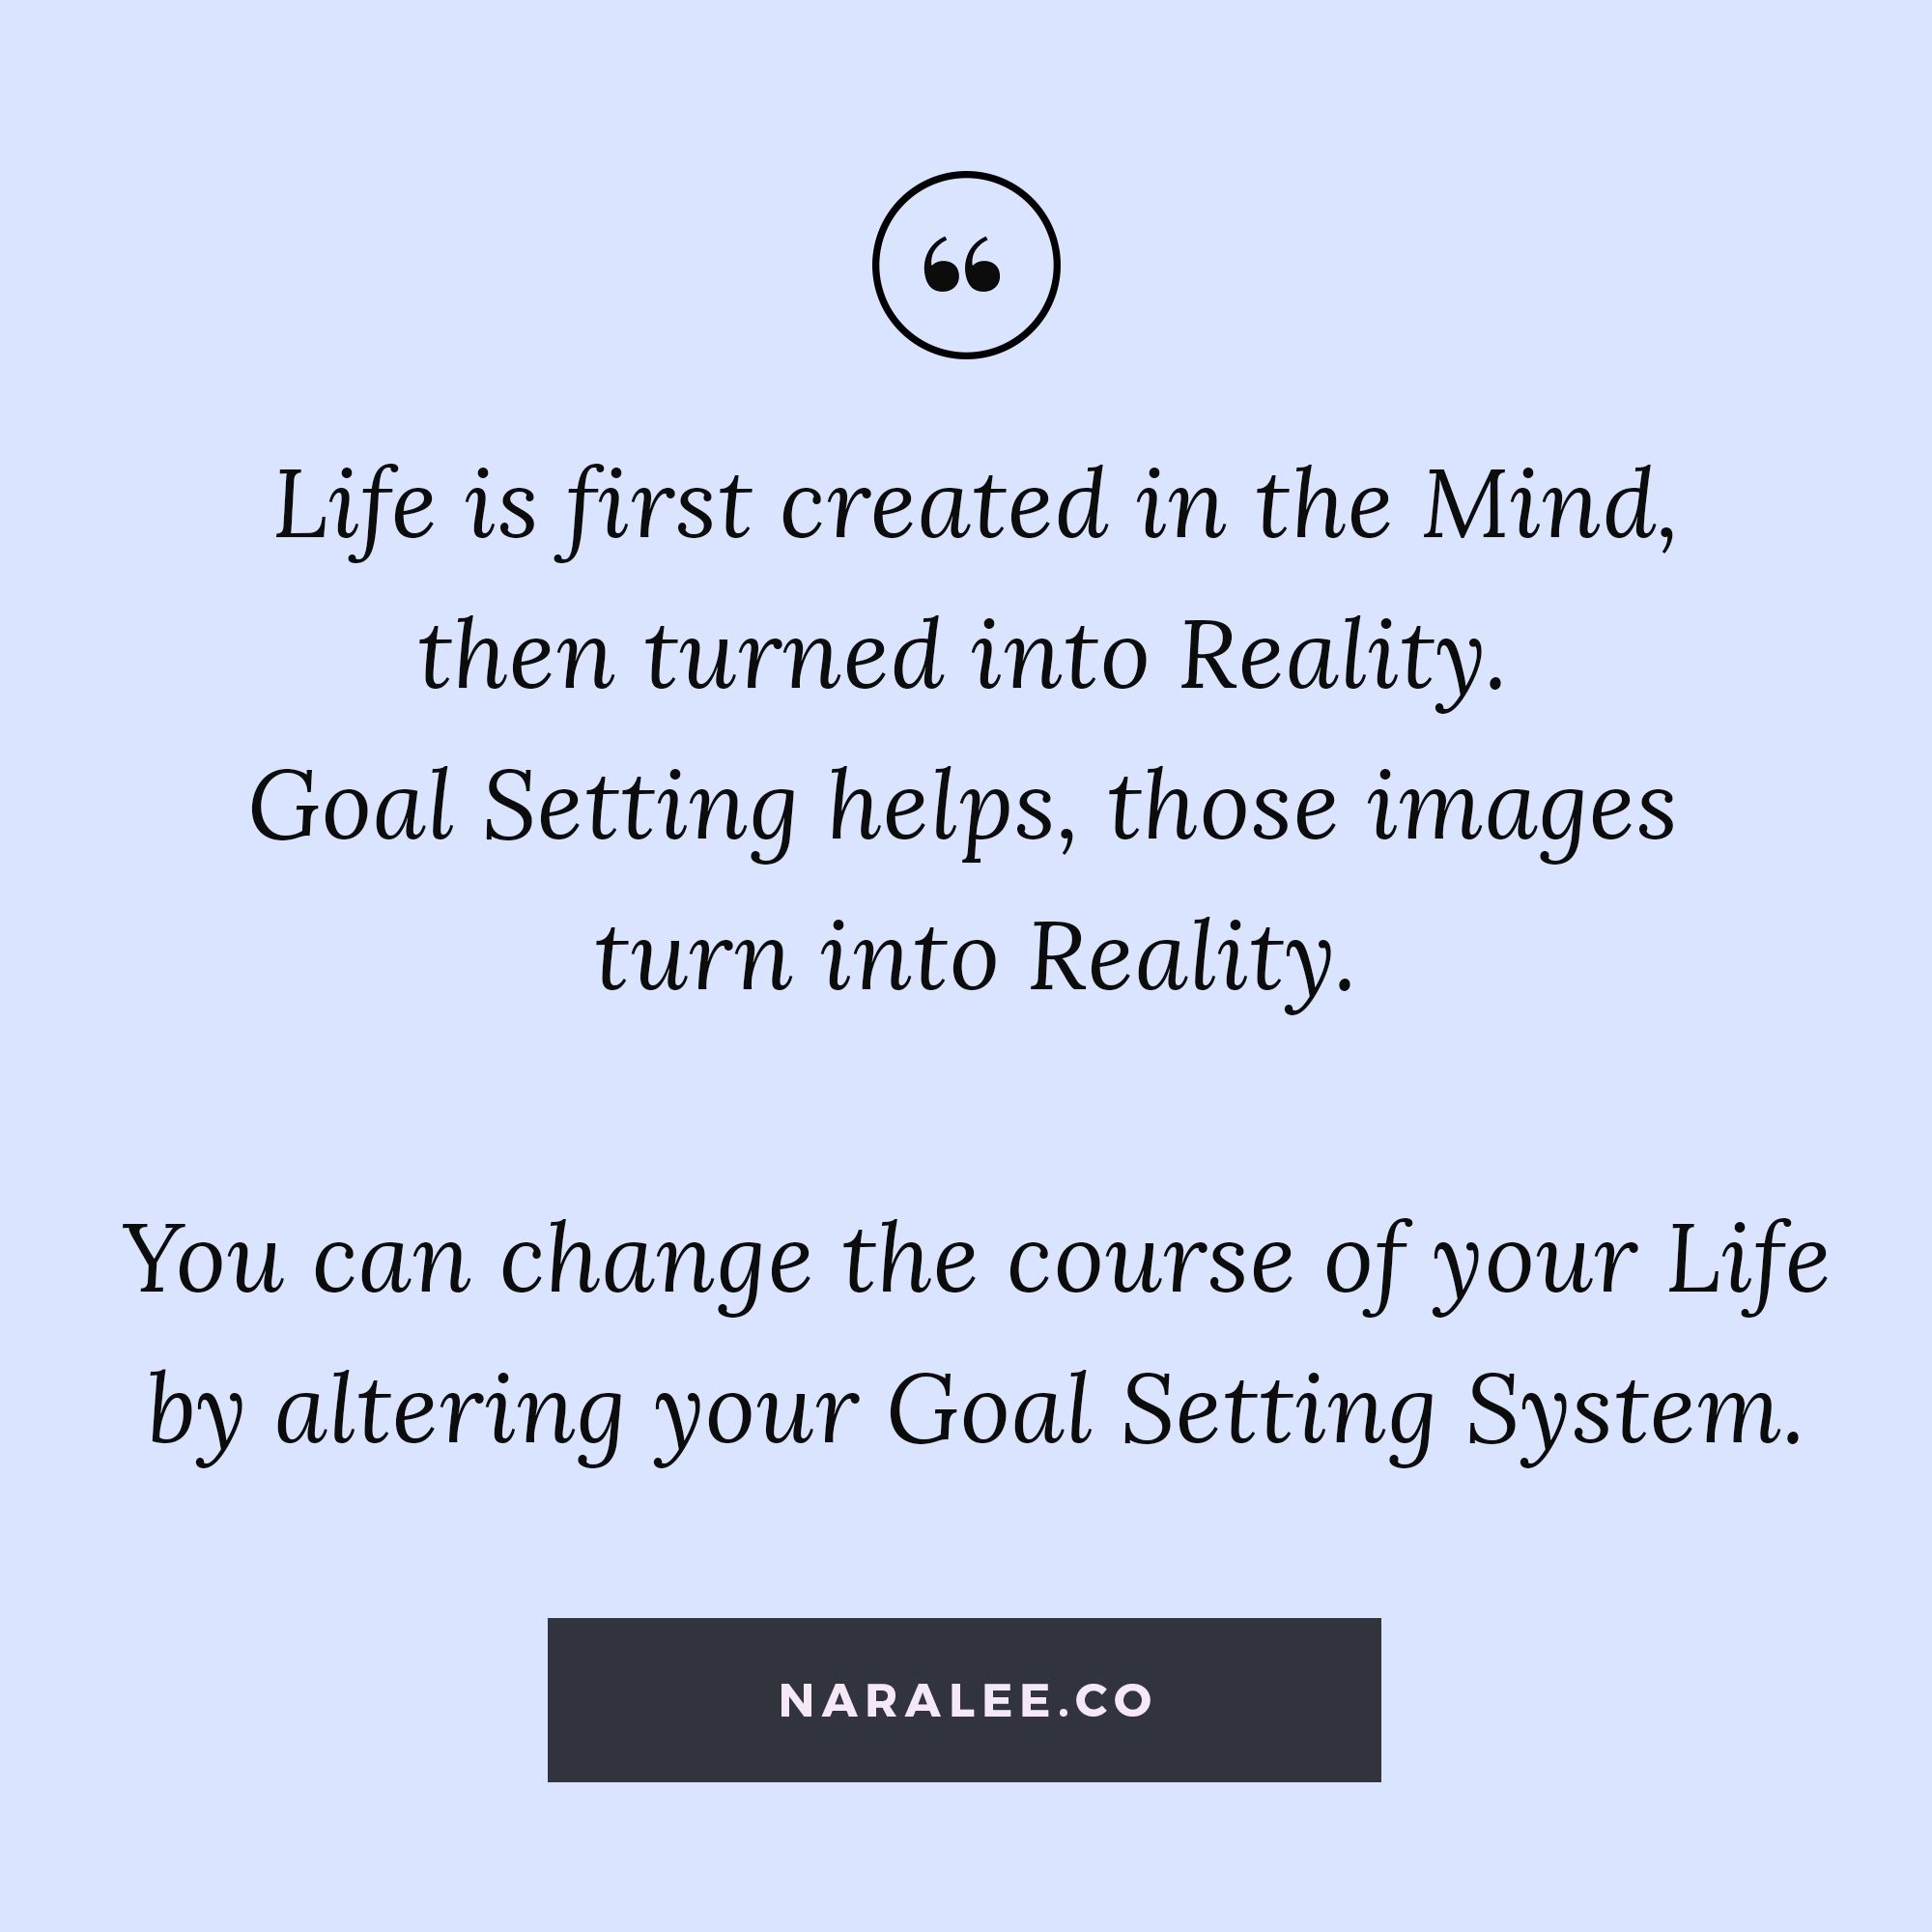 [Goal-Setting-Quotes] Goal-Setting-Change-your-Life-Quotes-Nara-Lee.jpg